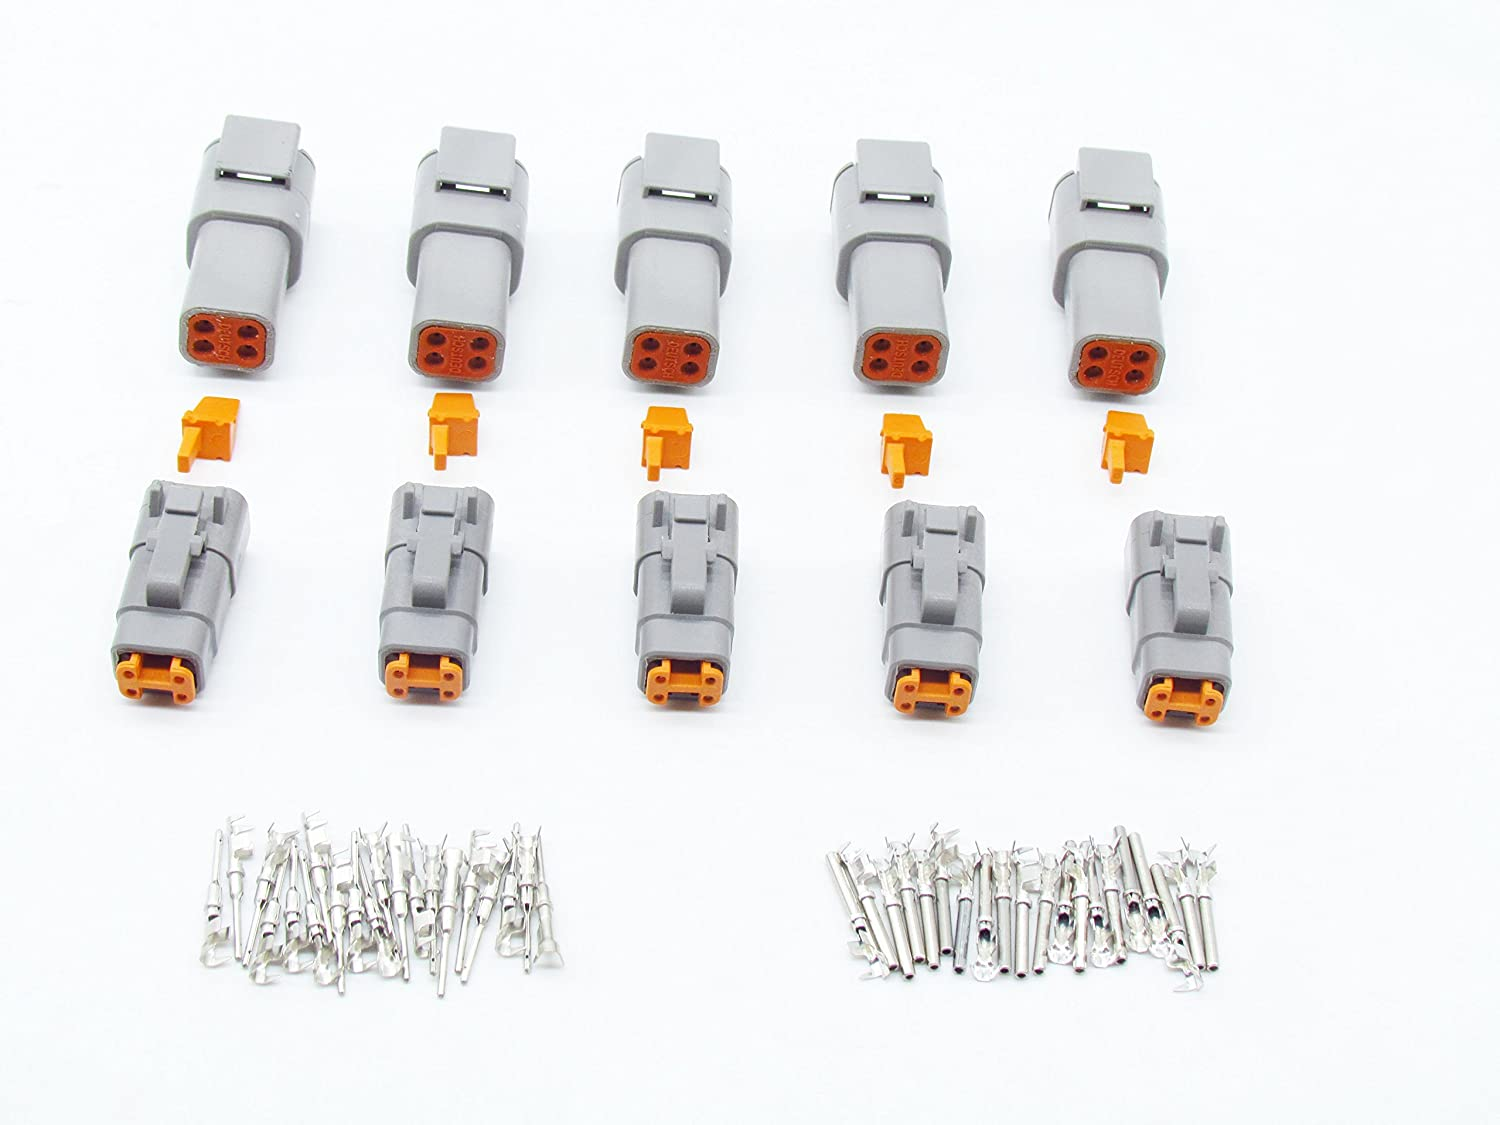 CNKF 5 Sets DTM plug DTM06-4S DTM04-4P 4 pin way male female waterproof auto connectors kaifa elec